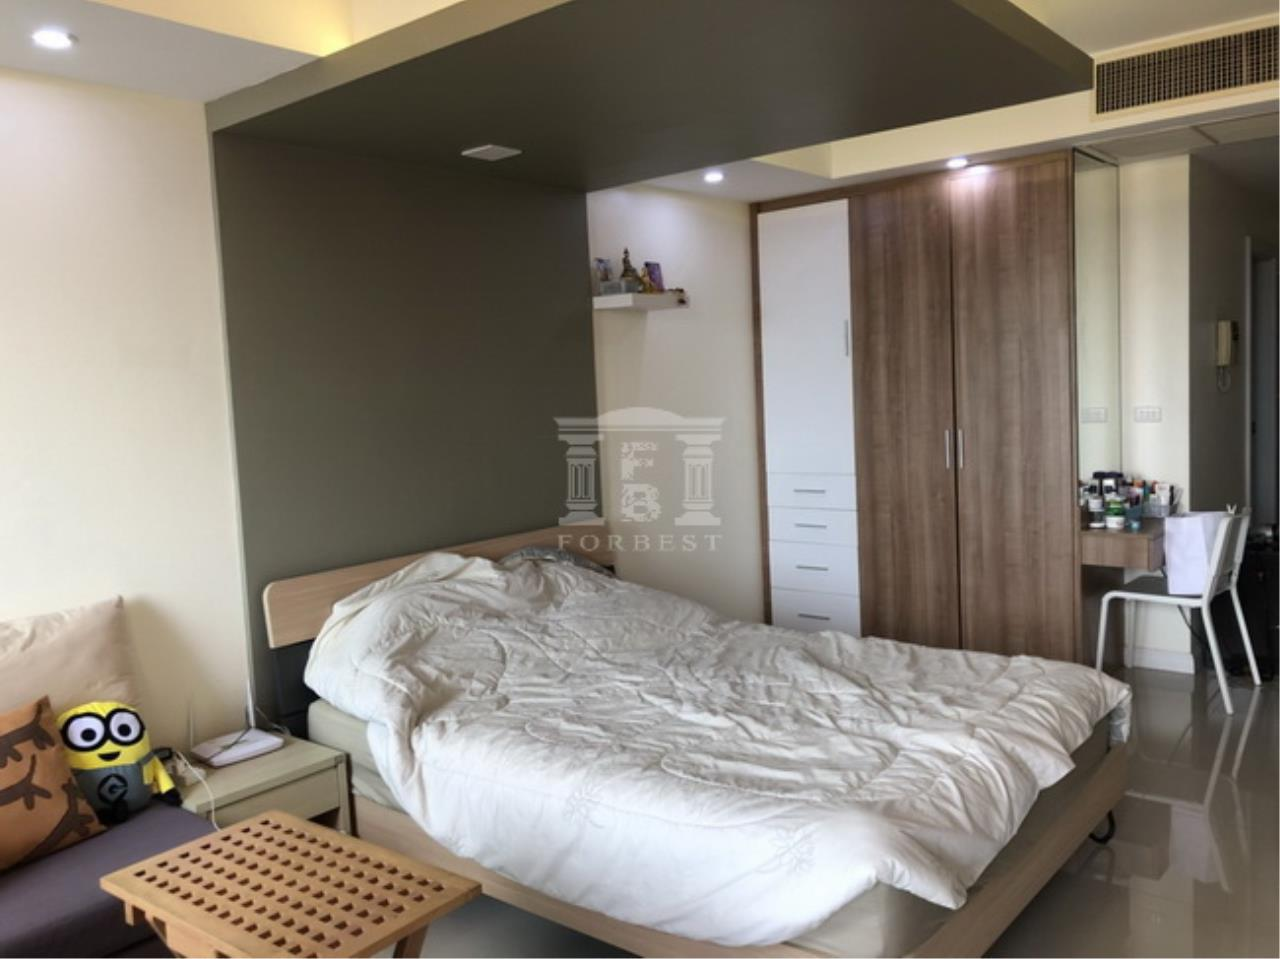 Forbest Properties Agency's 38326 - SUPALAI ORIENTAL PLACE SATHORN-SUANPLU 8 LIVING SPACE 40 SQ.M. 4